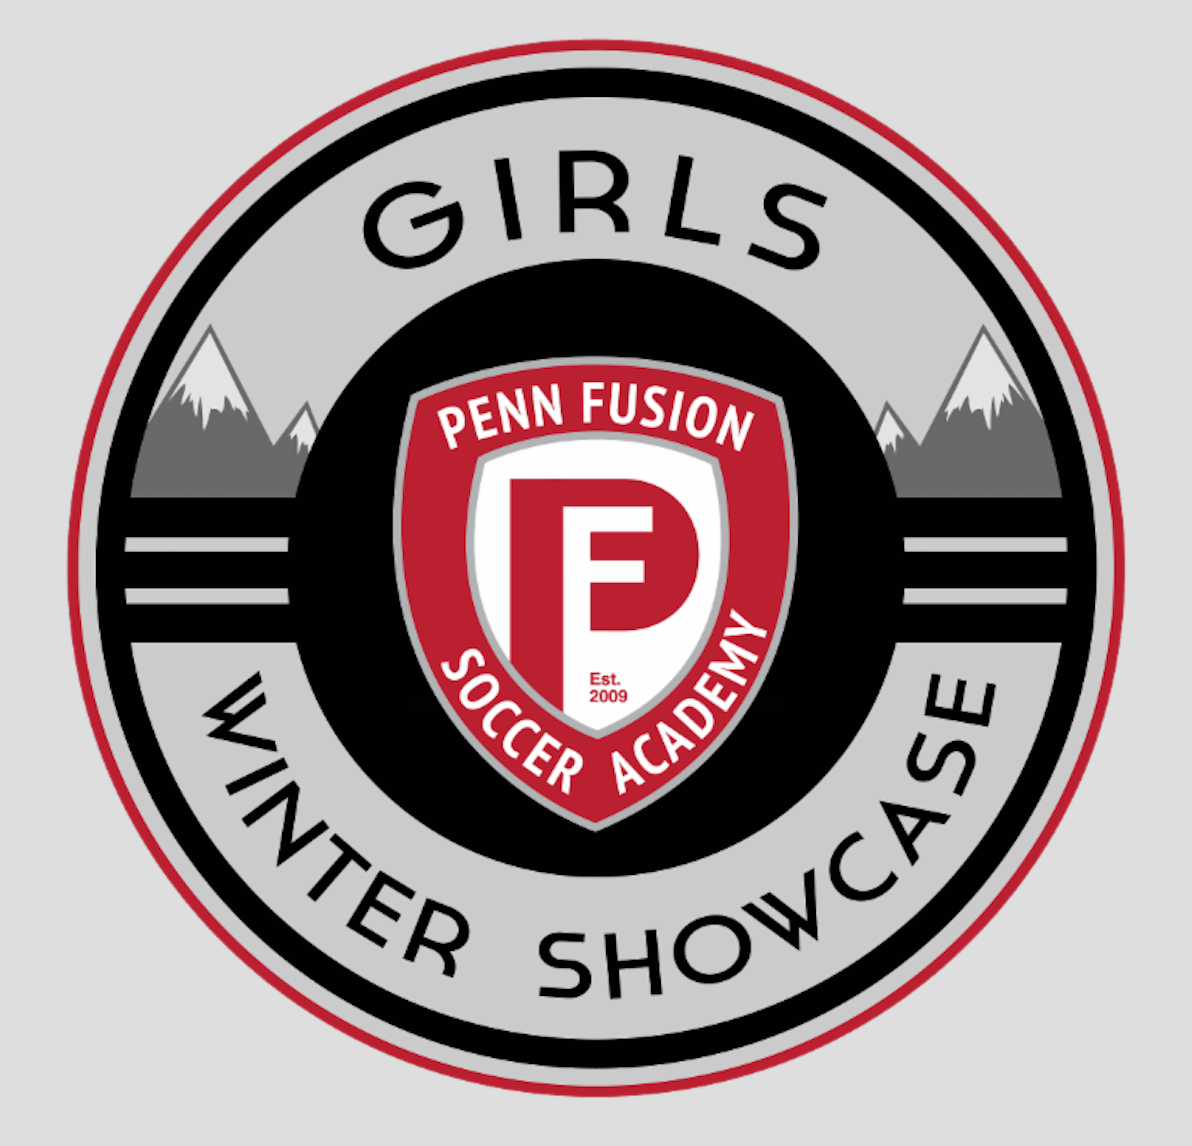 PENN FUSION GIRLS WINTER SHOWCASE